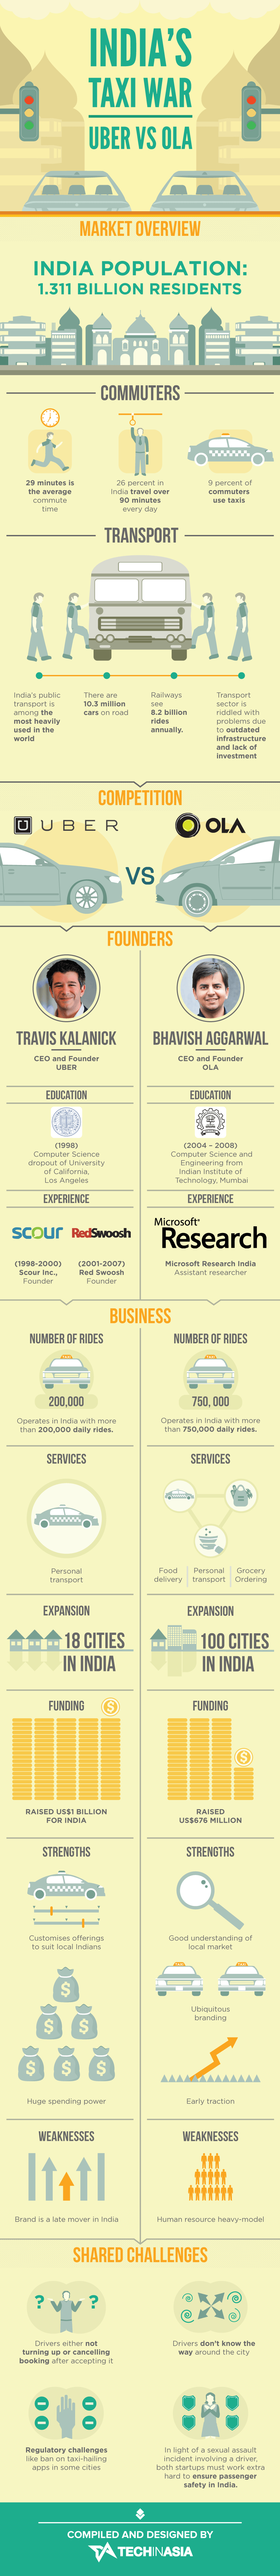 Infographic: India's Taxi War - Uber vs  Ola